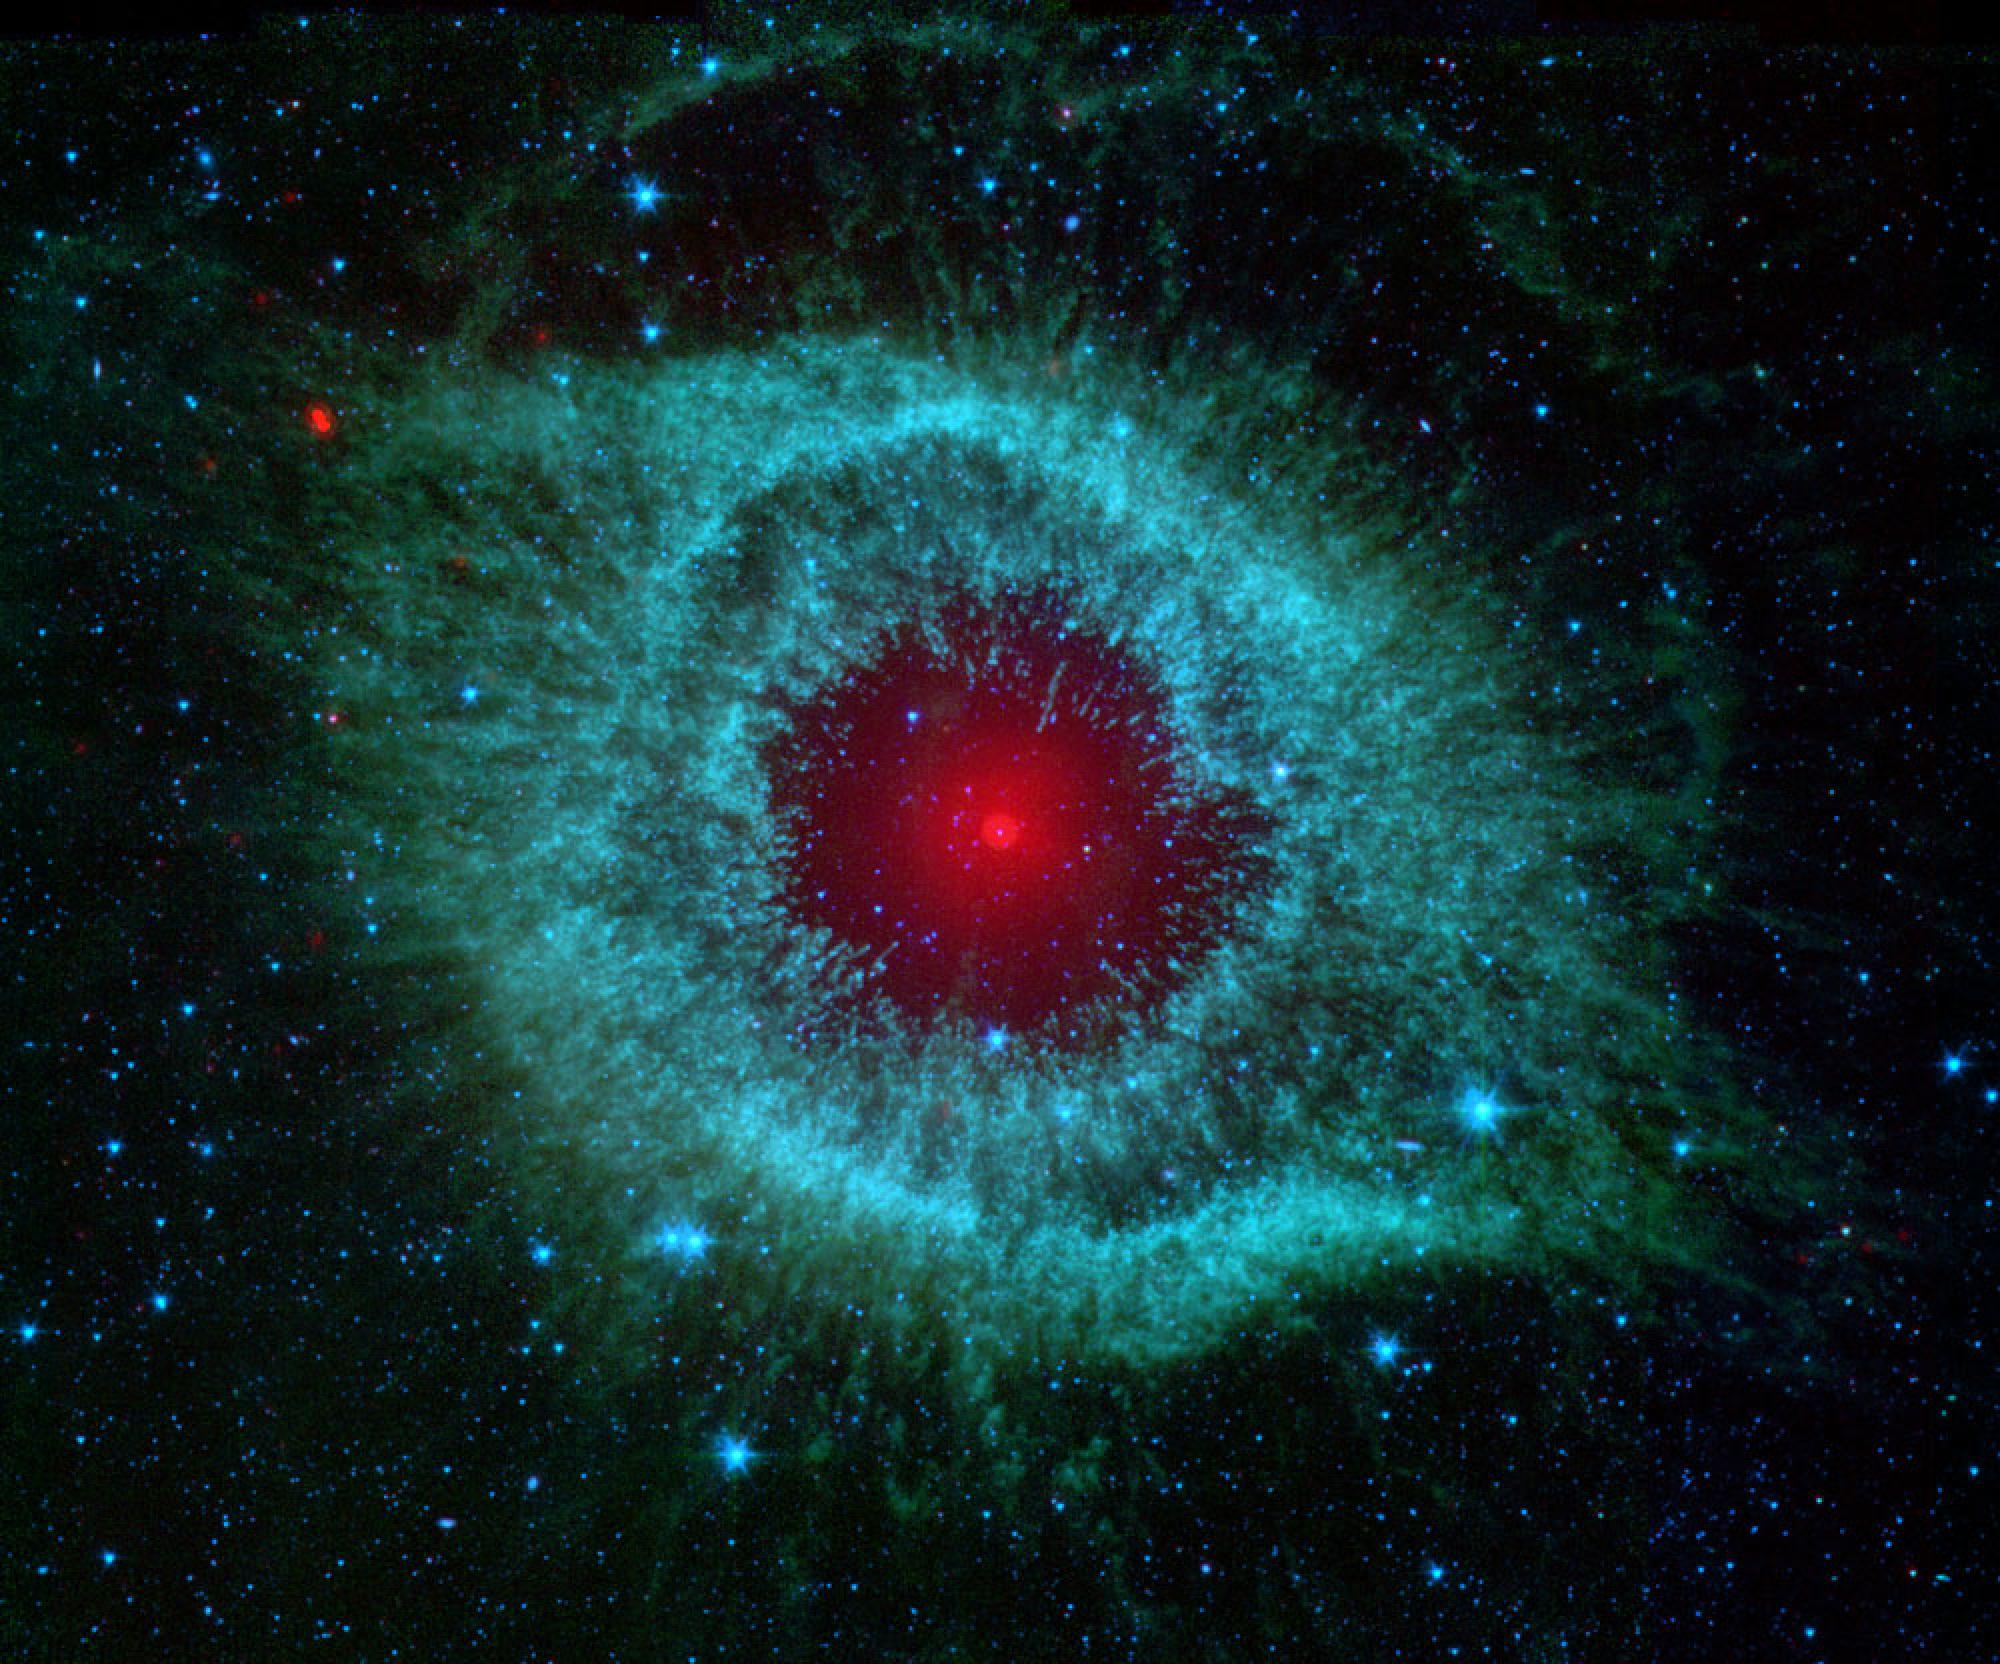 The Spitzer Space Telescope has provided glimpses into the very beginnings of our own existence as well as into the far future of our solar system. This infrared image shows the Helix nebula, which is located about 700 light-years away in the constellatio